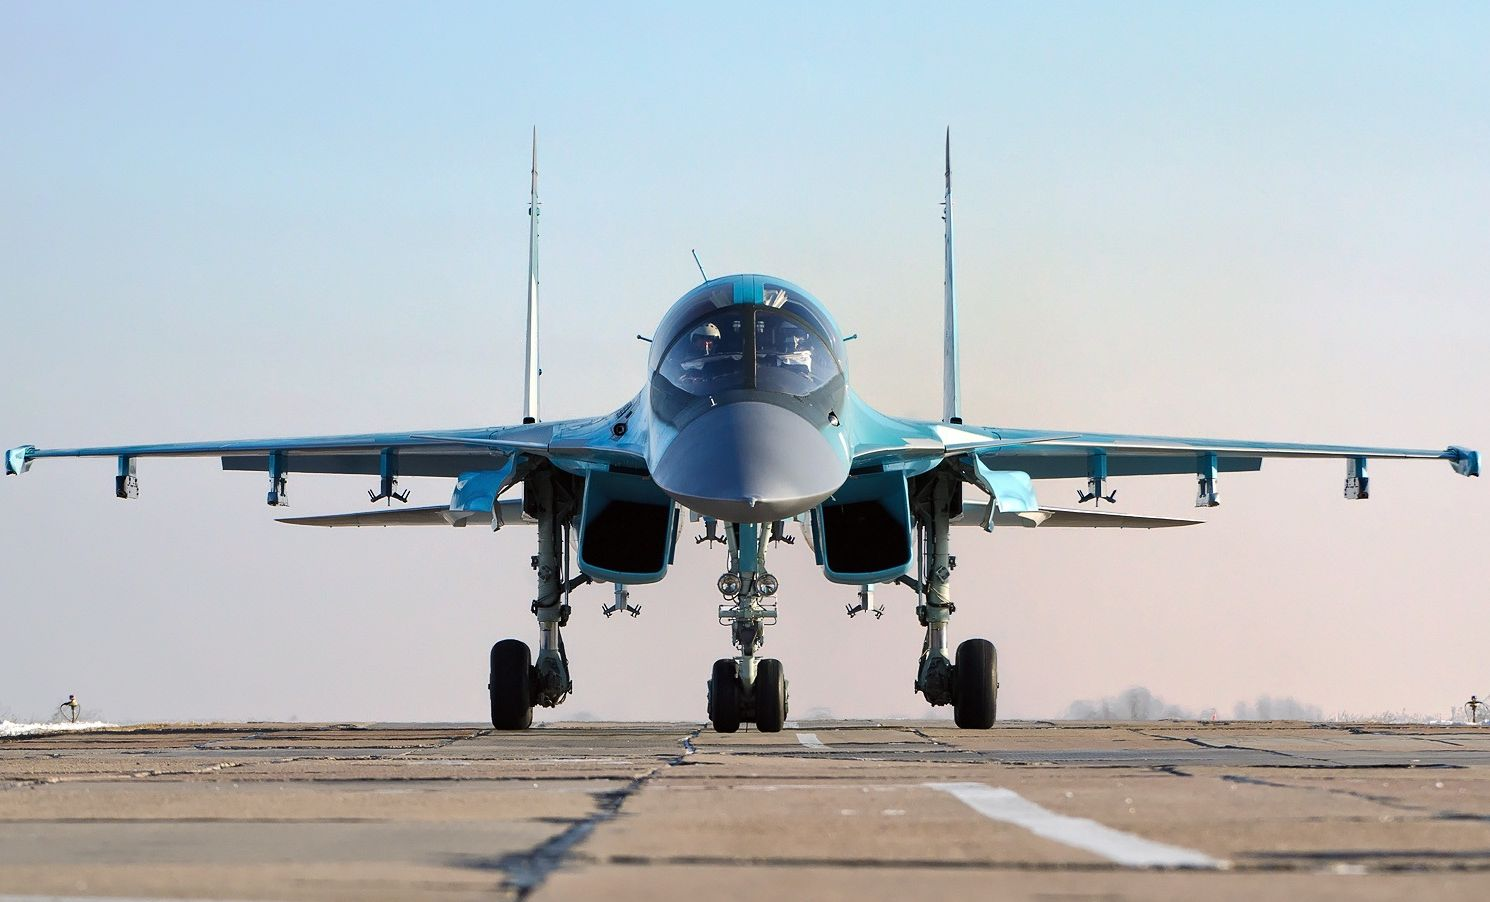 russie - Page 2 Russian_Air_Force_Sukhoi_Su-34